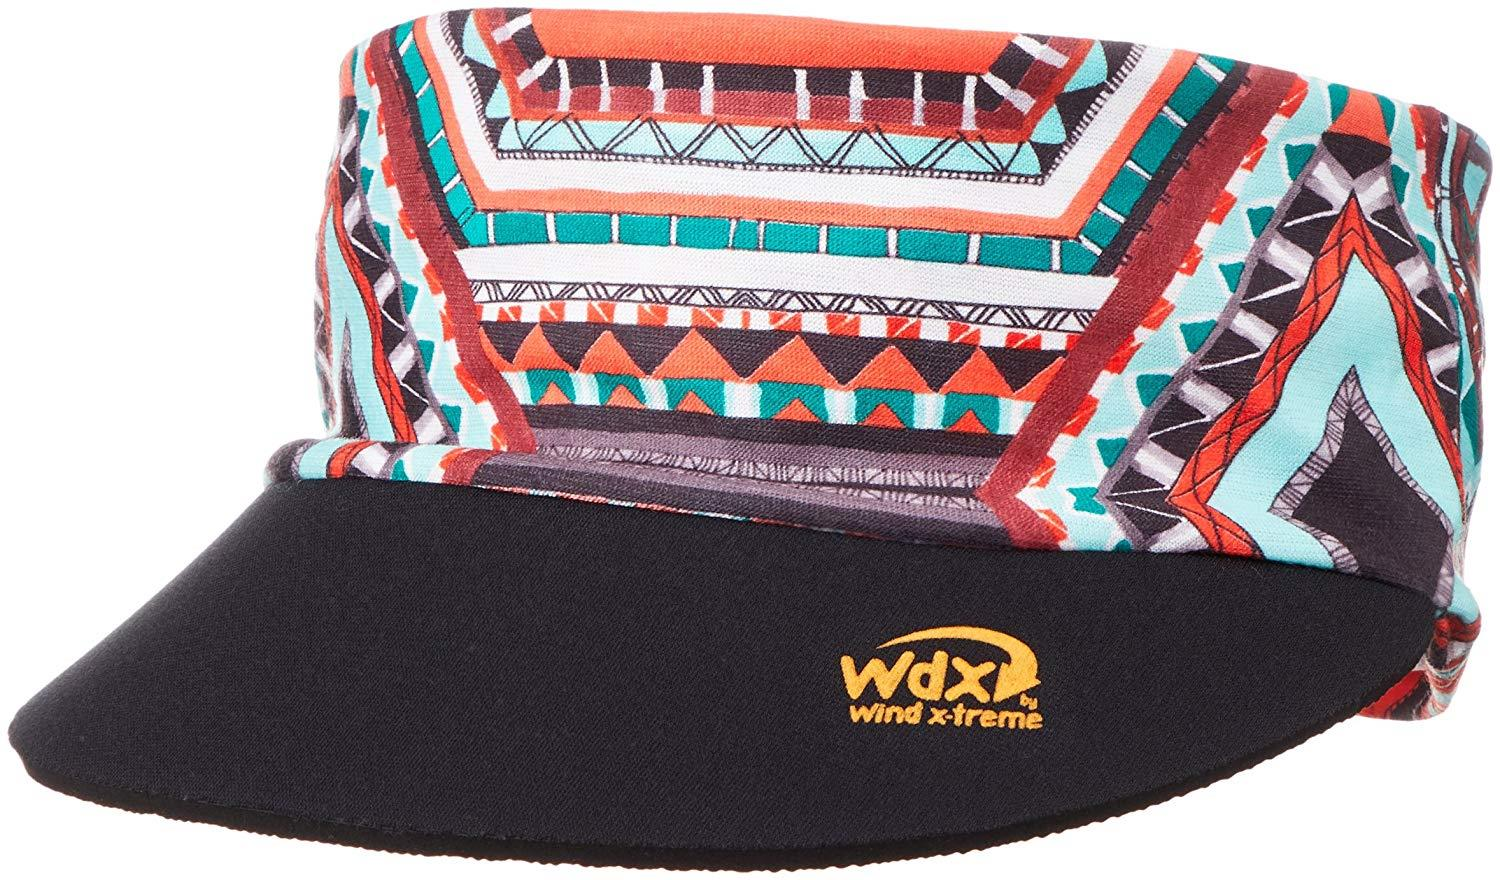 Headband Peak Maira Wd16122